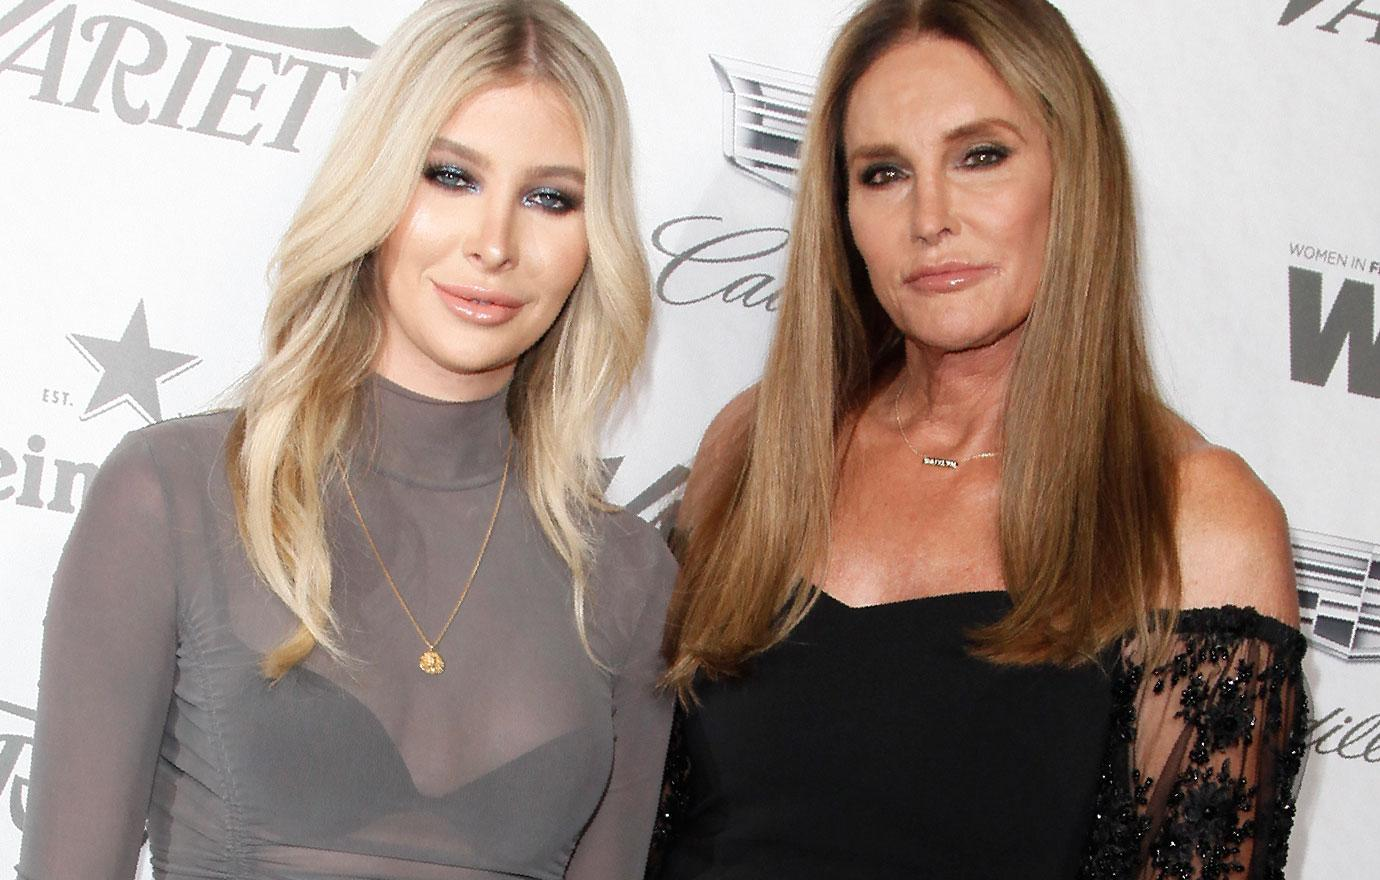 Caitlyn Jenner Sophia Hutchins Attend Women In Film Event